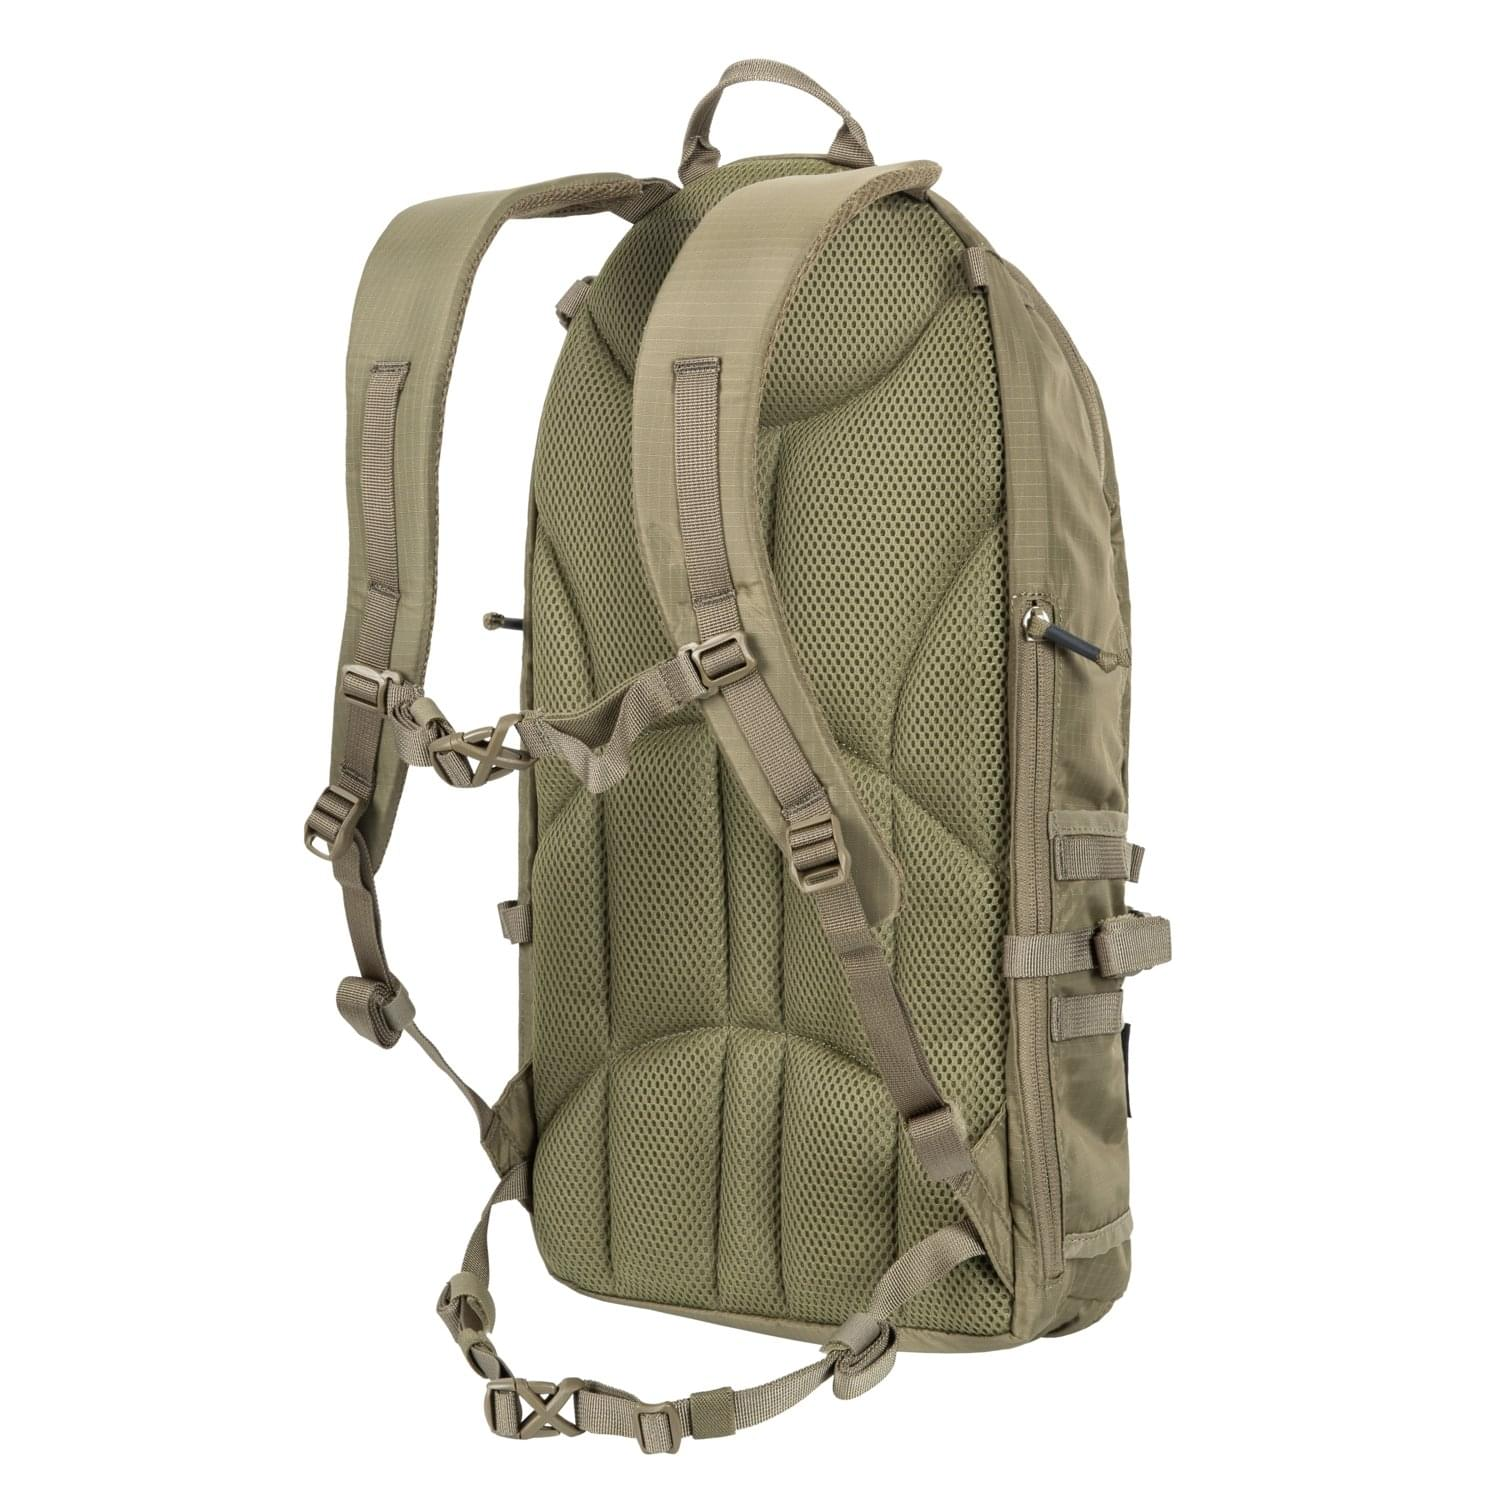 Balo Helikon-Tex Groundhog – Nylon – Adaptive Green